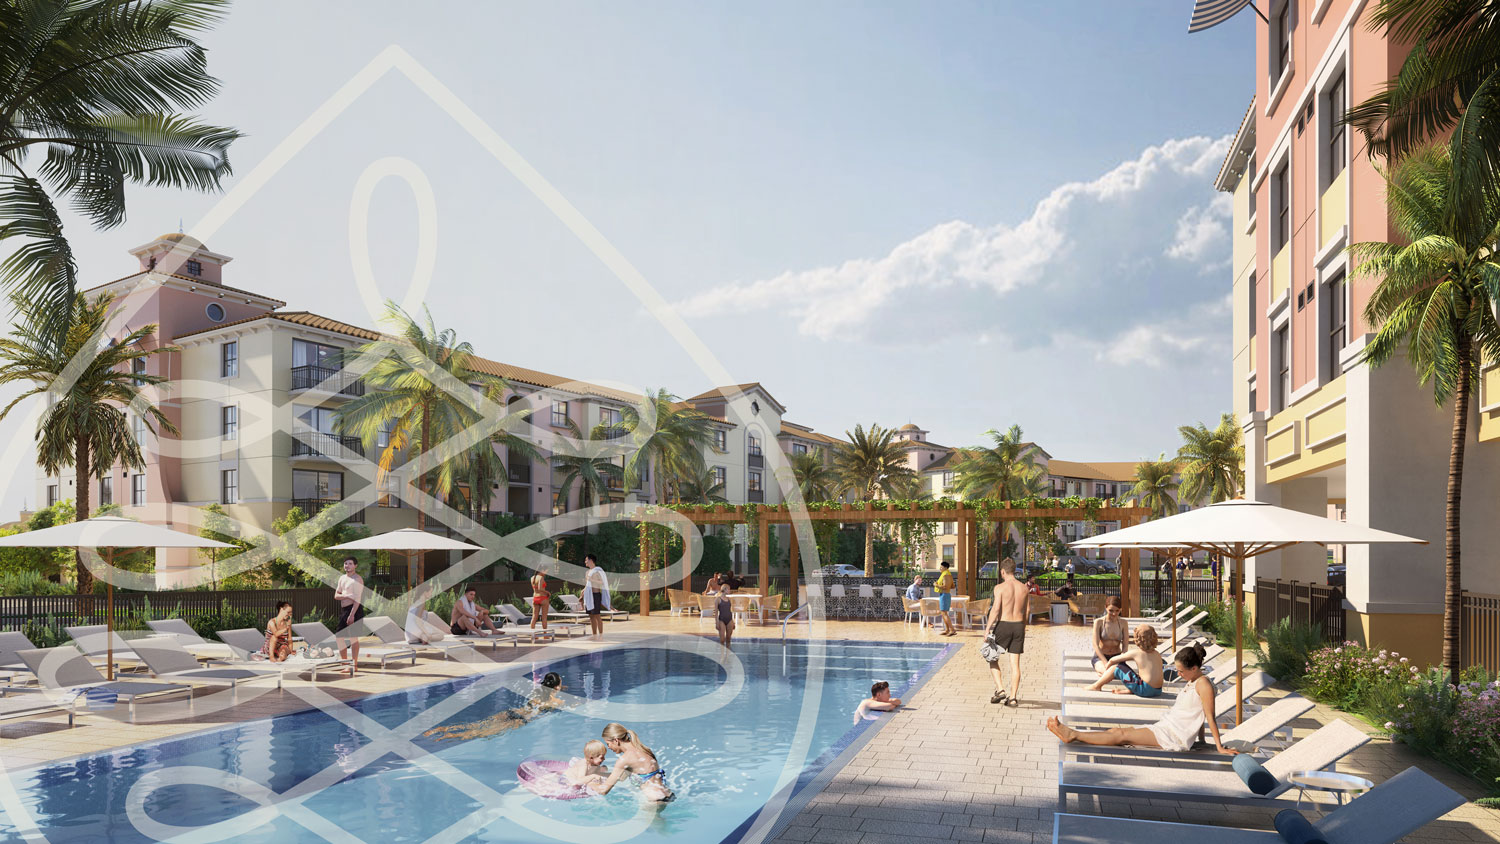 Rendering of pool deck with people lounging in the sun and swimming in the pool